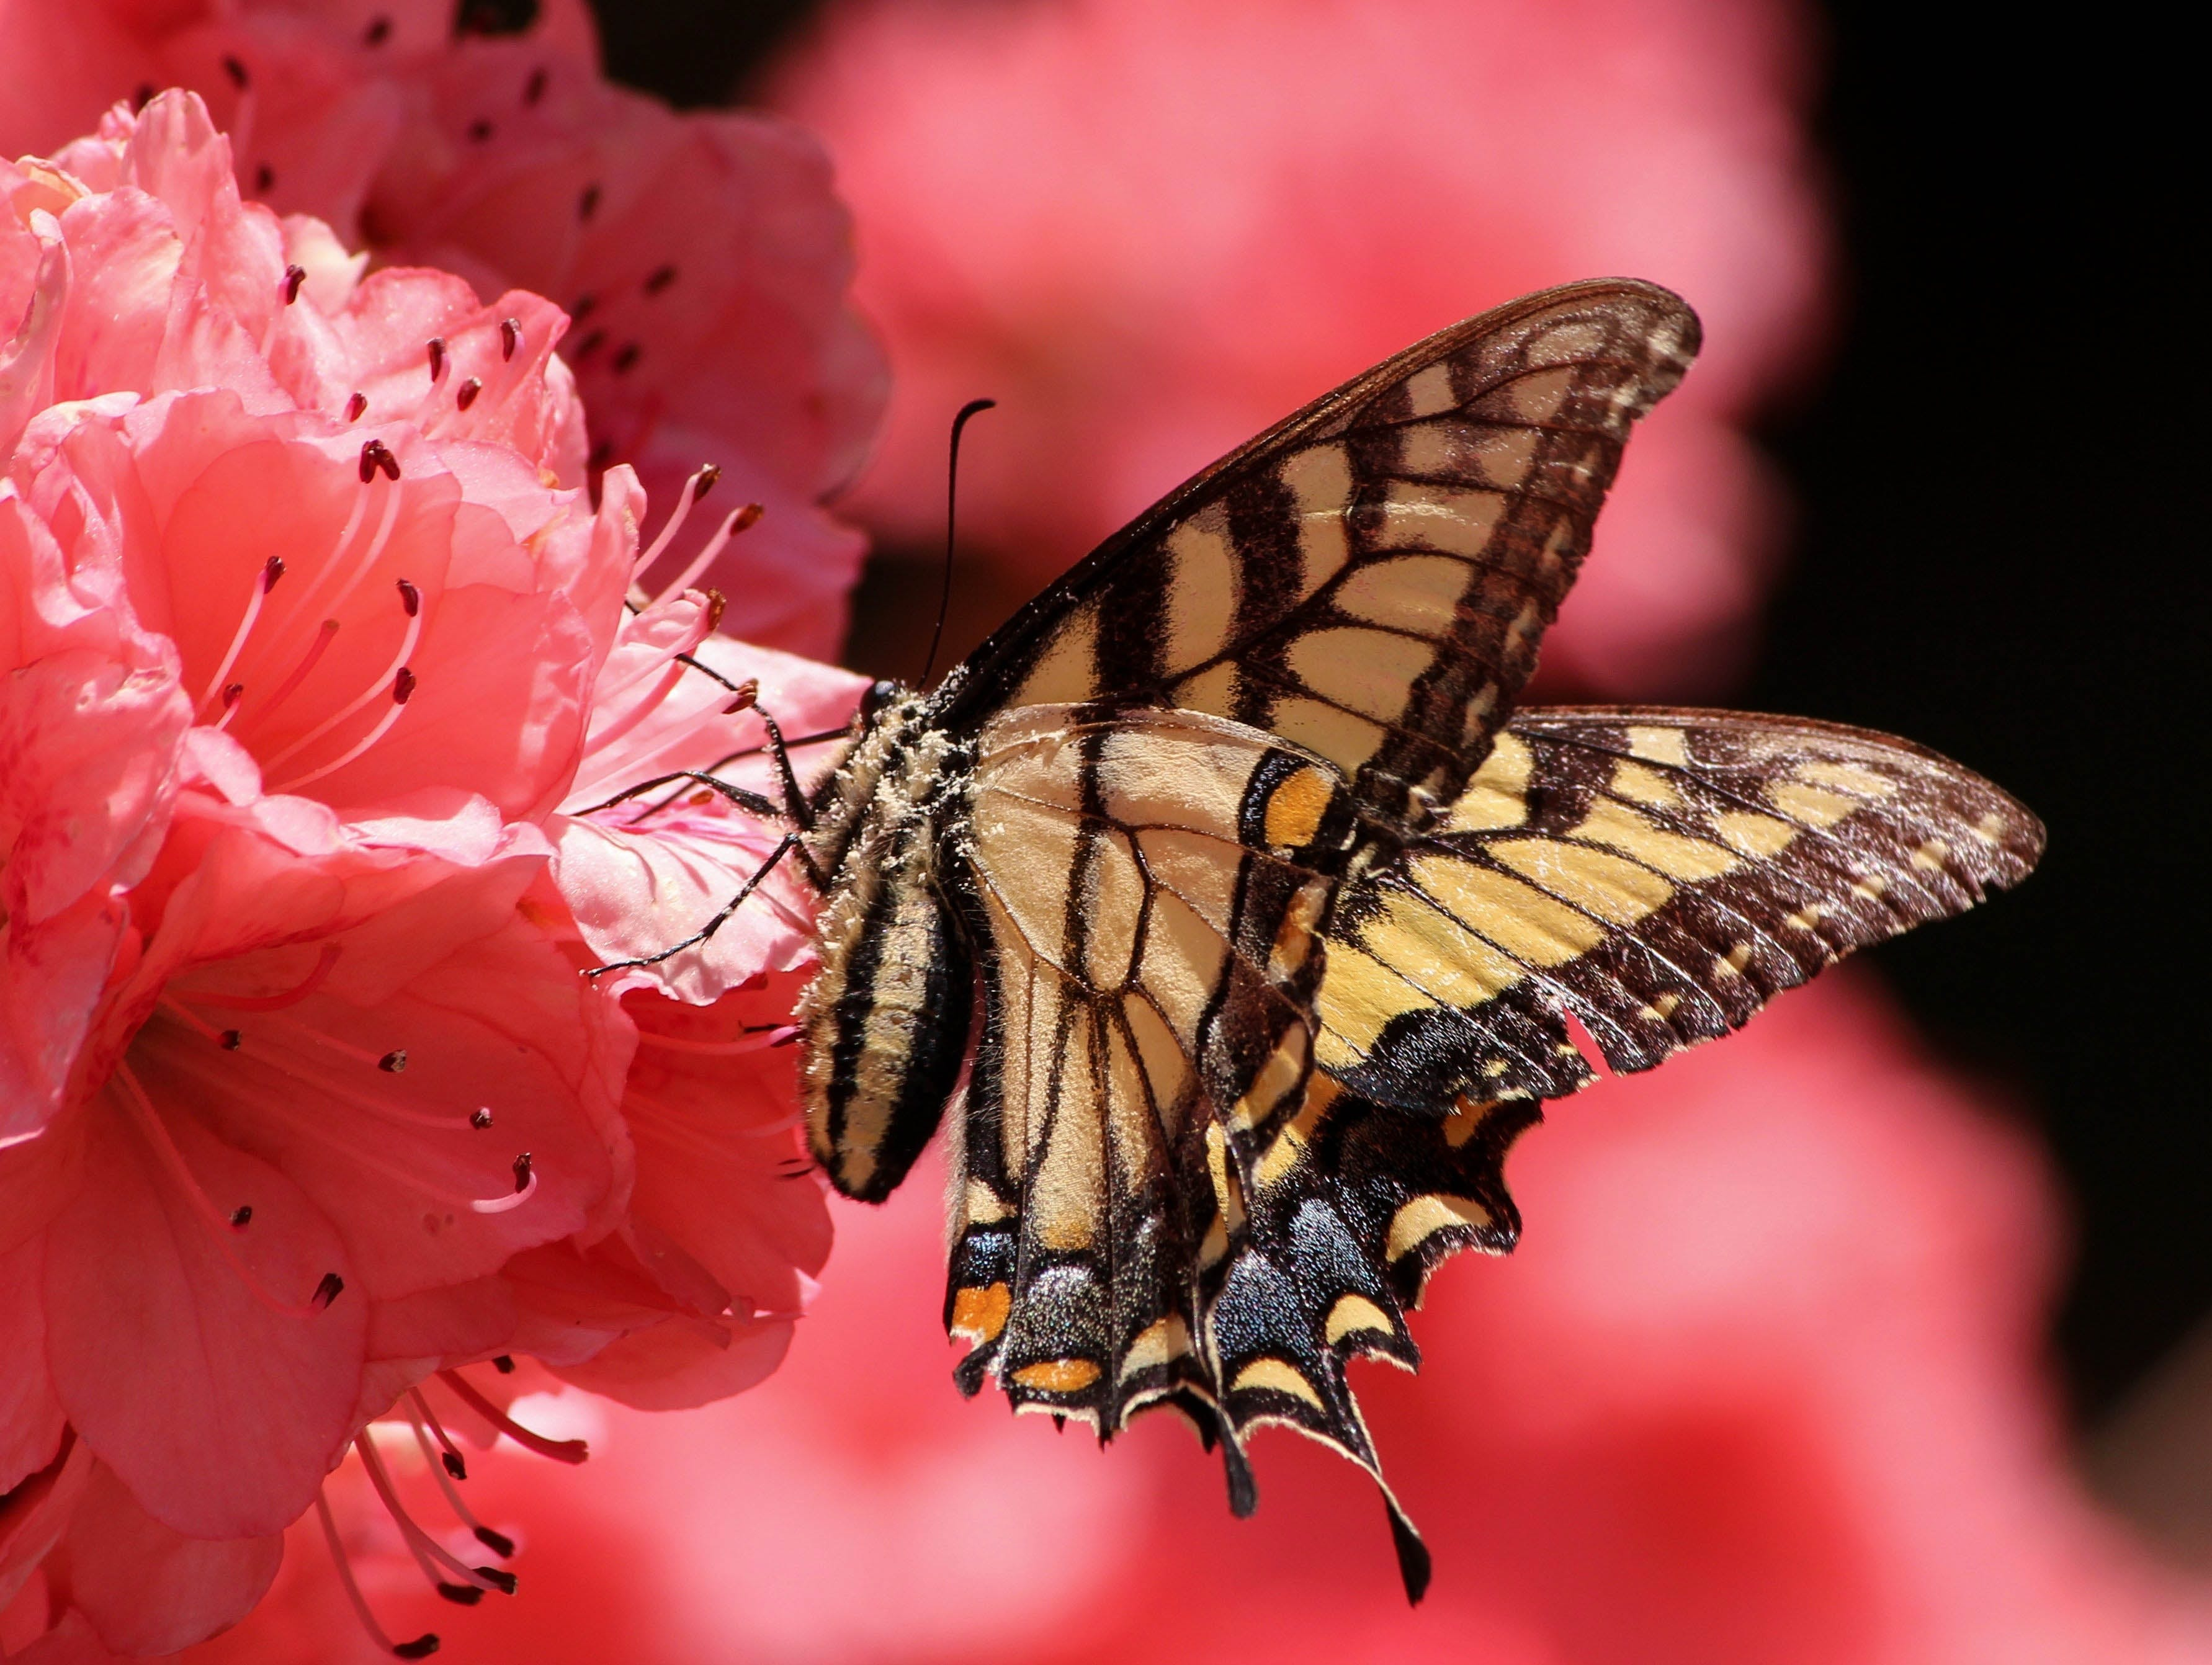 Brown Beige and Black Butterfly on Pink Petaled Flower